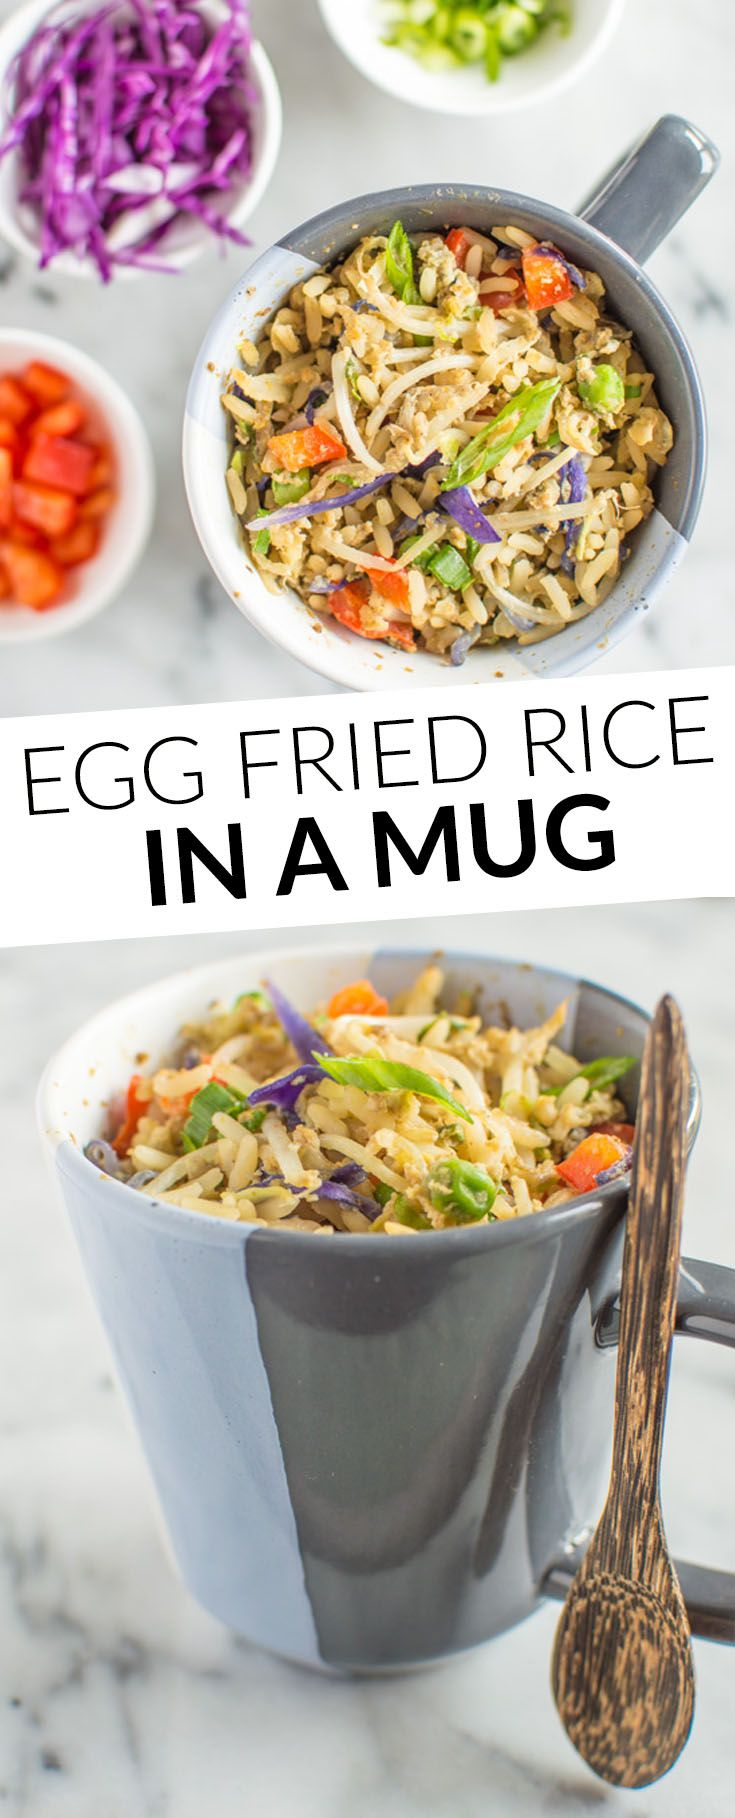 Egg Fried Rice In A Mug - easy meal in 10 minutes! @healthynibs